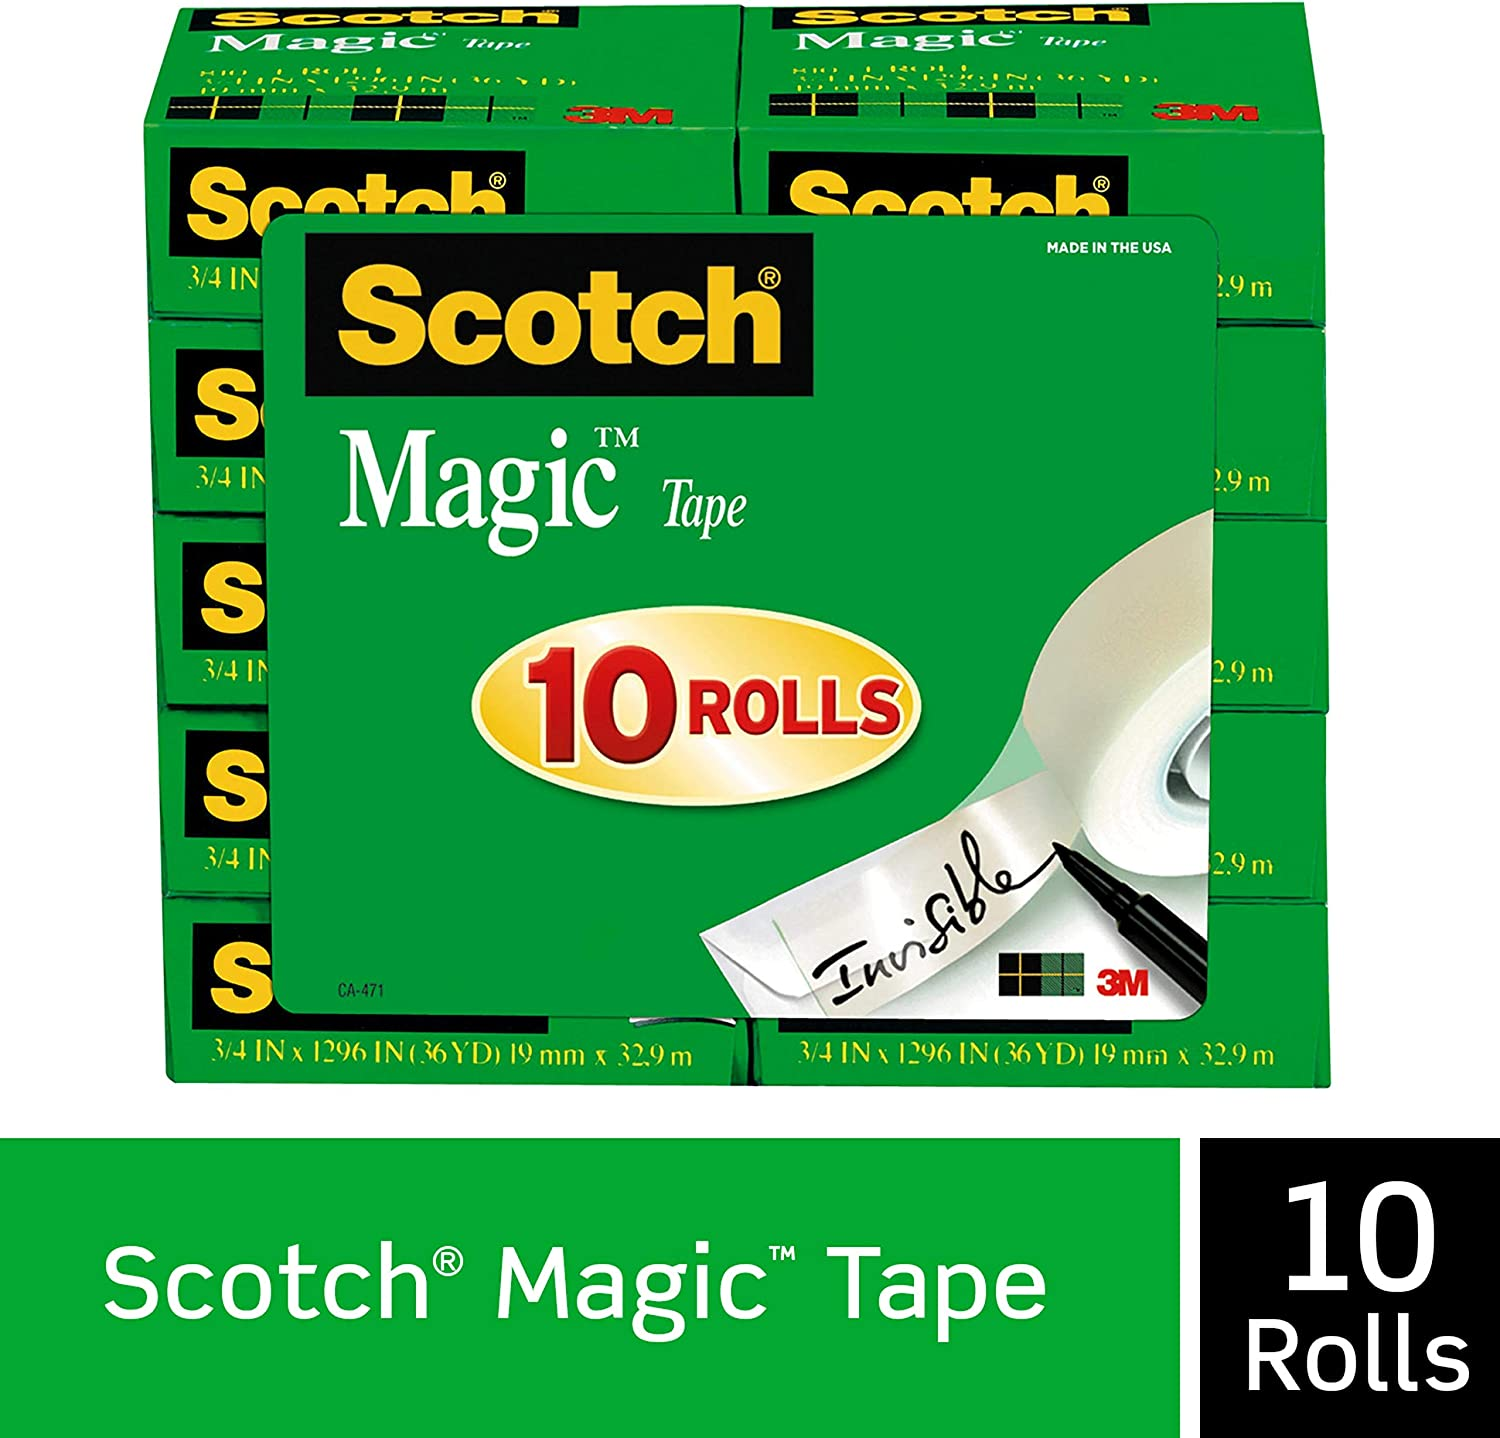 Scotch Magic Tape, 10 Rolls, Numerous Applications, Invisible, Engineered for Repairing, 3/4 x 1000 Inches, Boxed (810P10K)